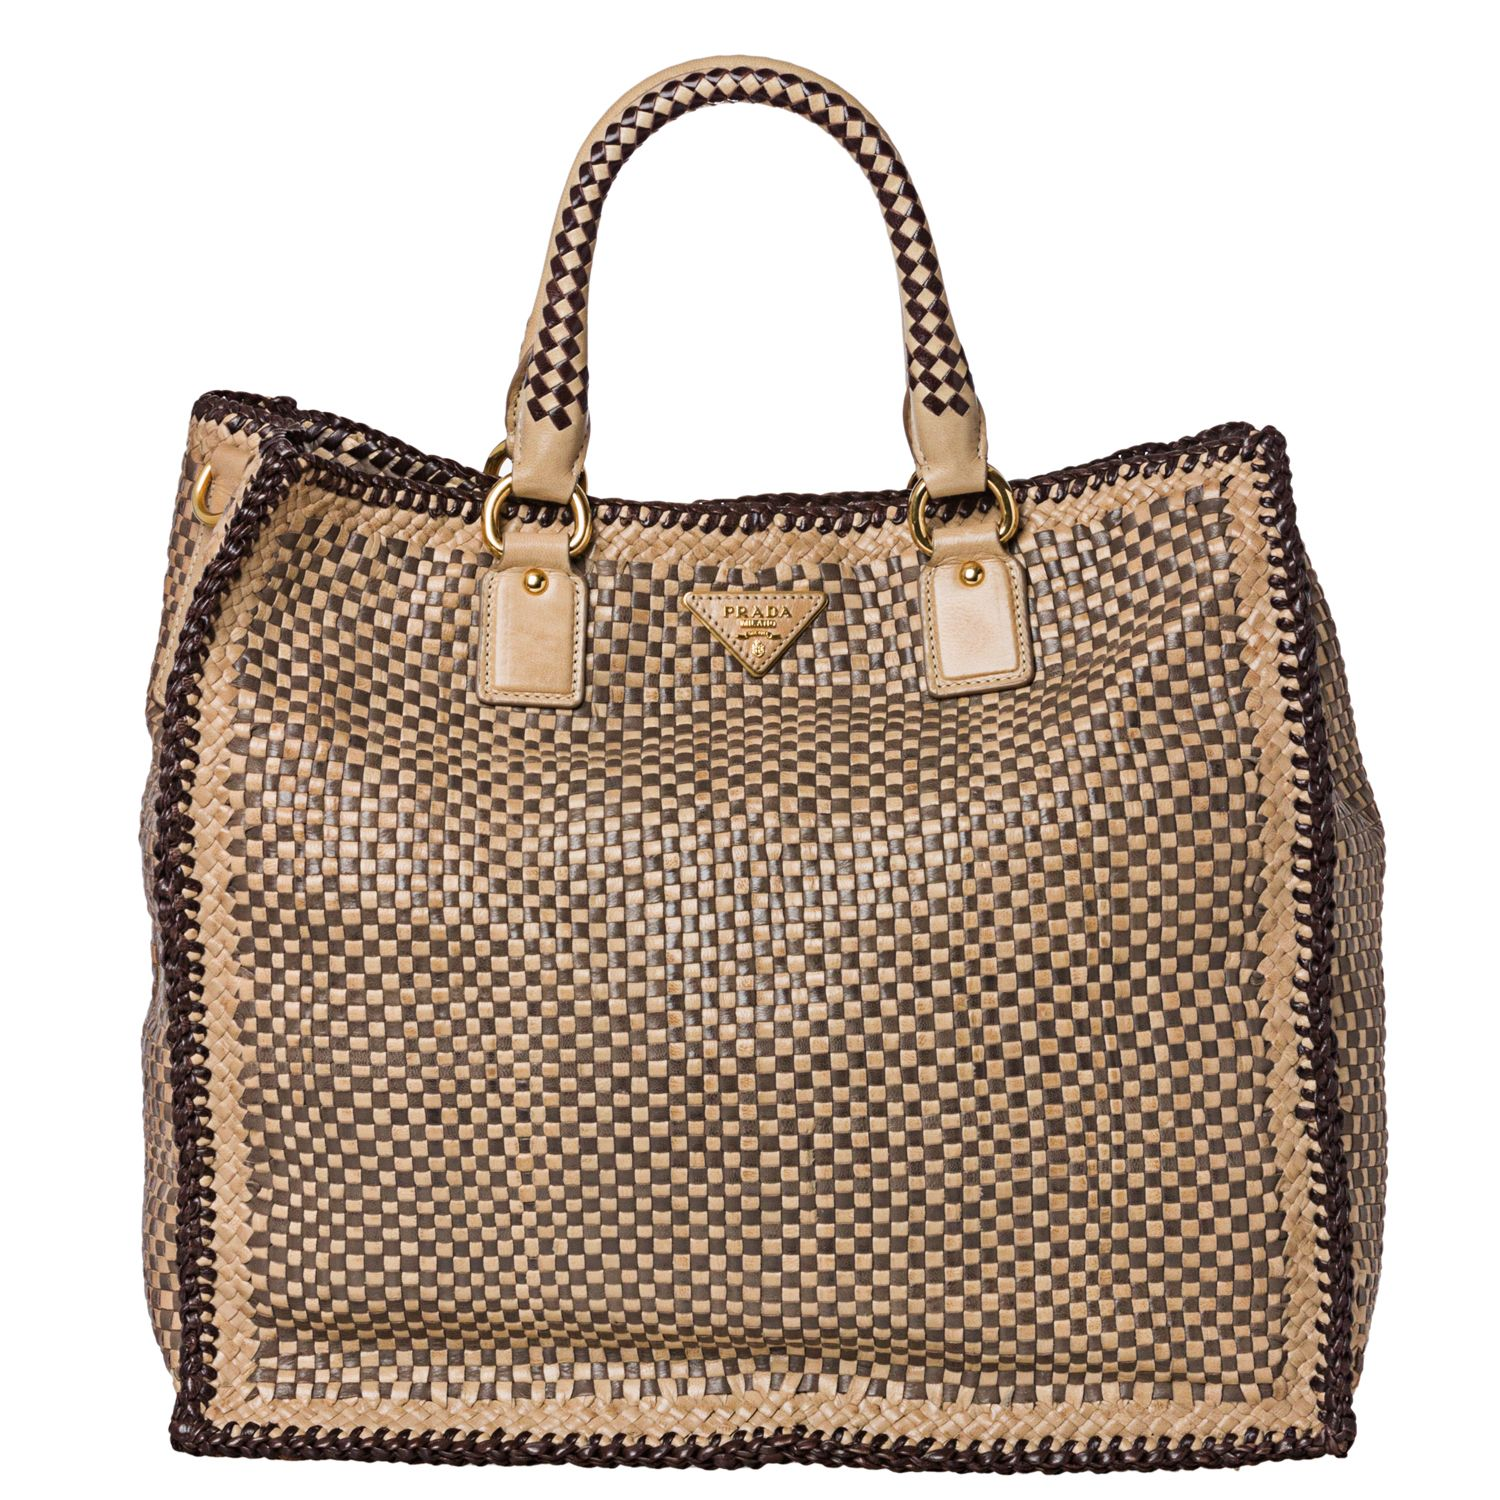 123456789101112 14d58 24ebd  where can i buy prada woven tan taupe leather  madras tote bag 1d5e3 d6229 8478d487c451f